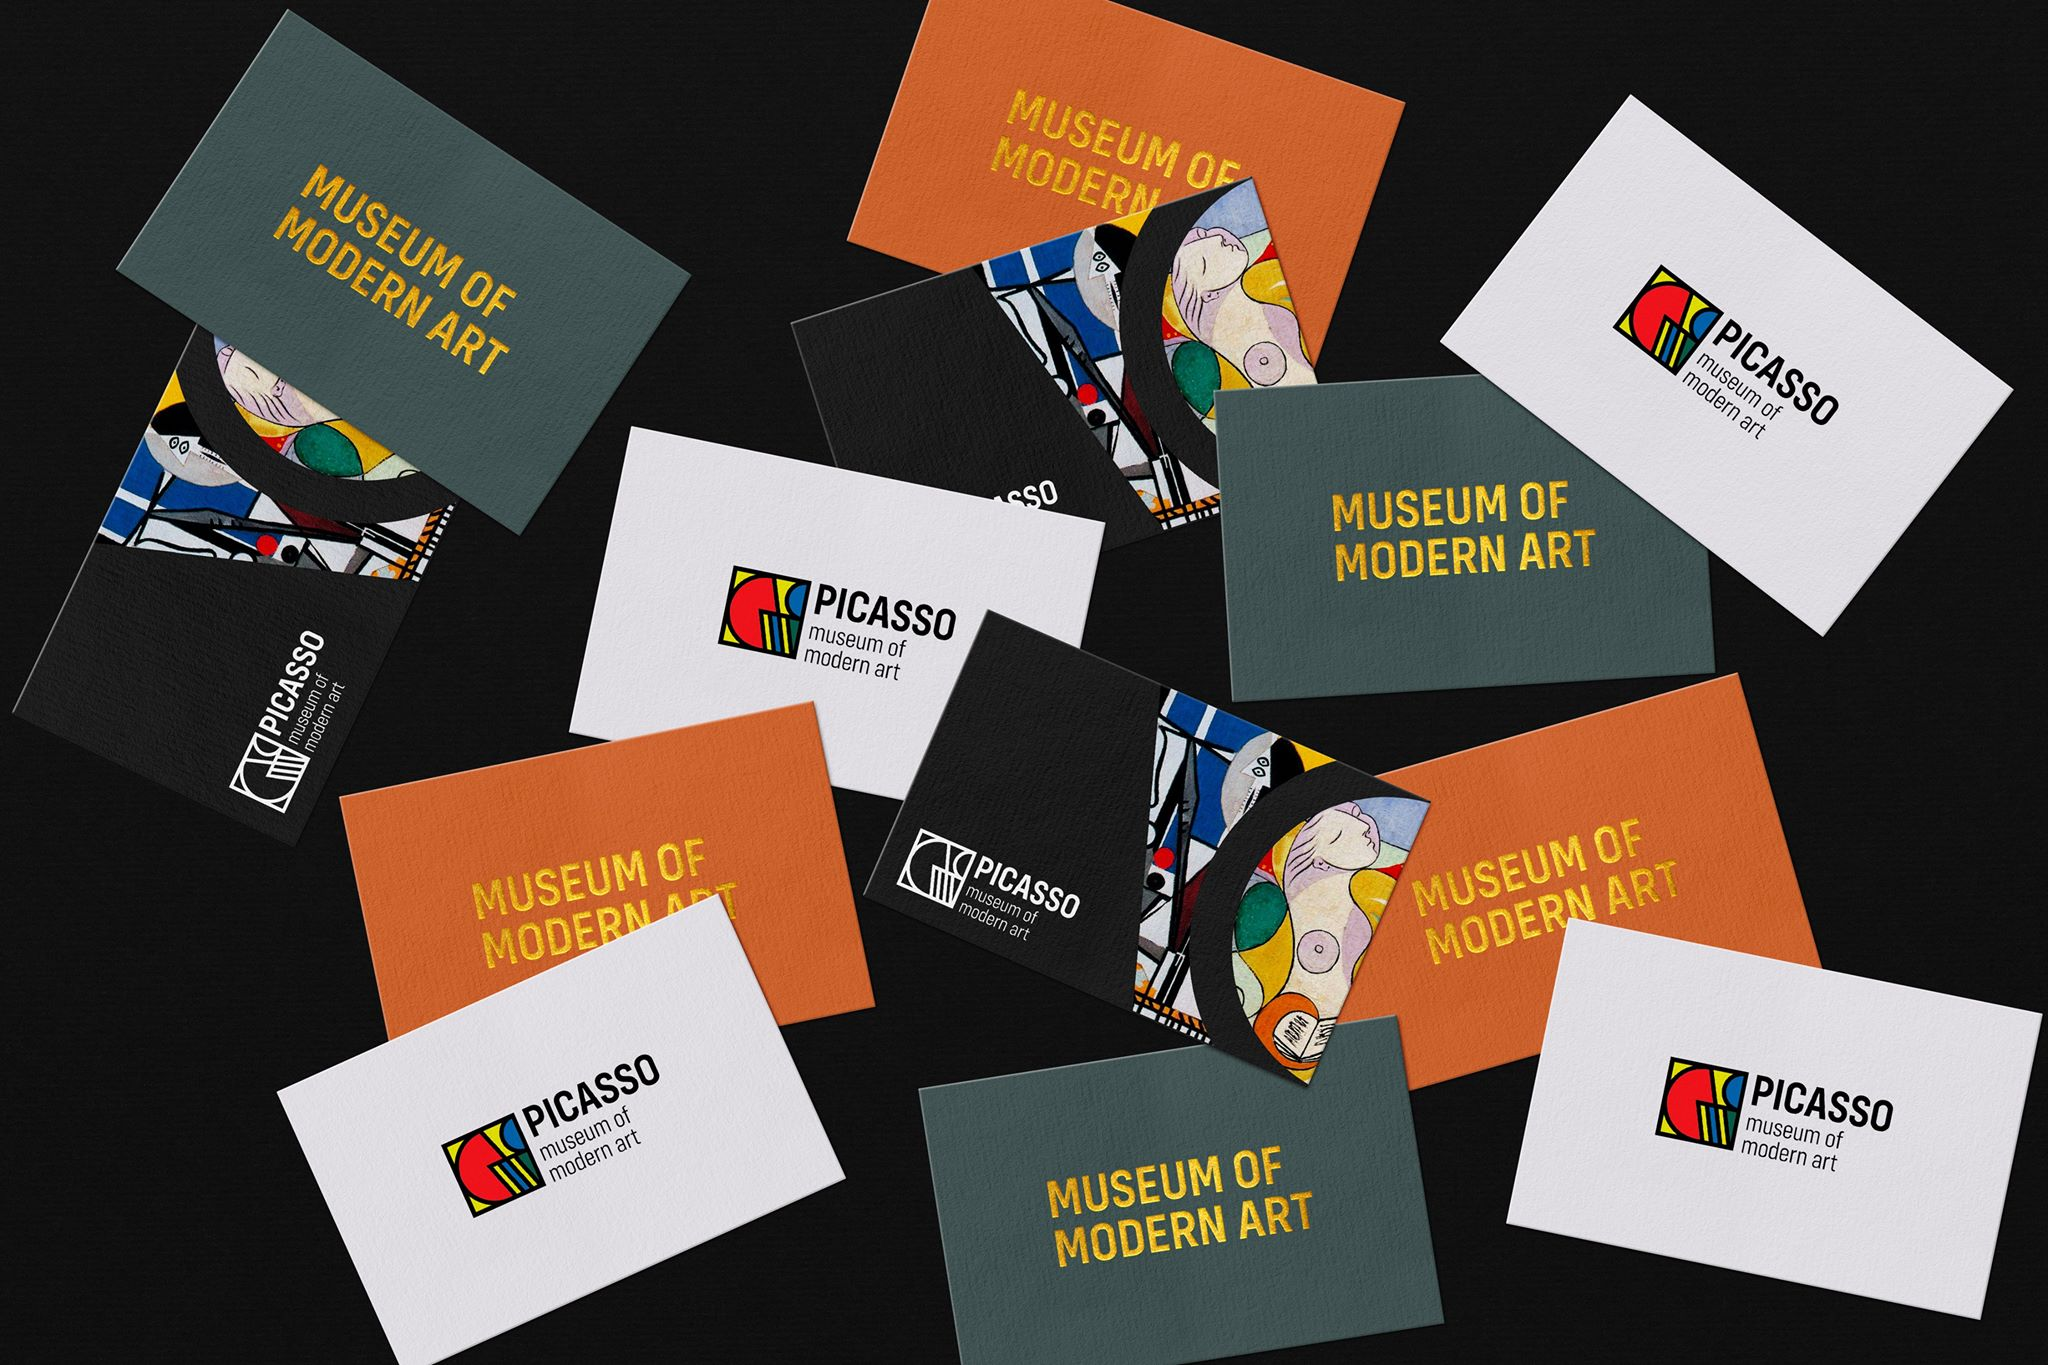 Concept for Picasso Museum of Modern Art Identity Design